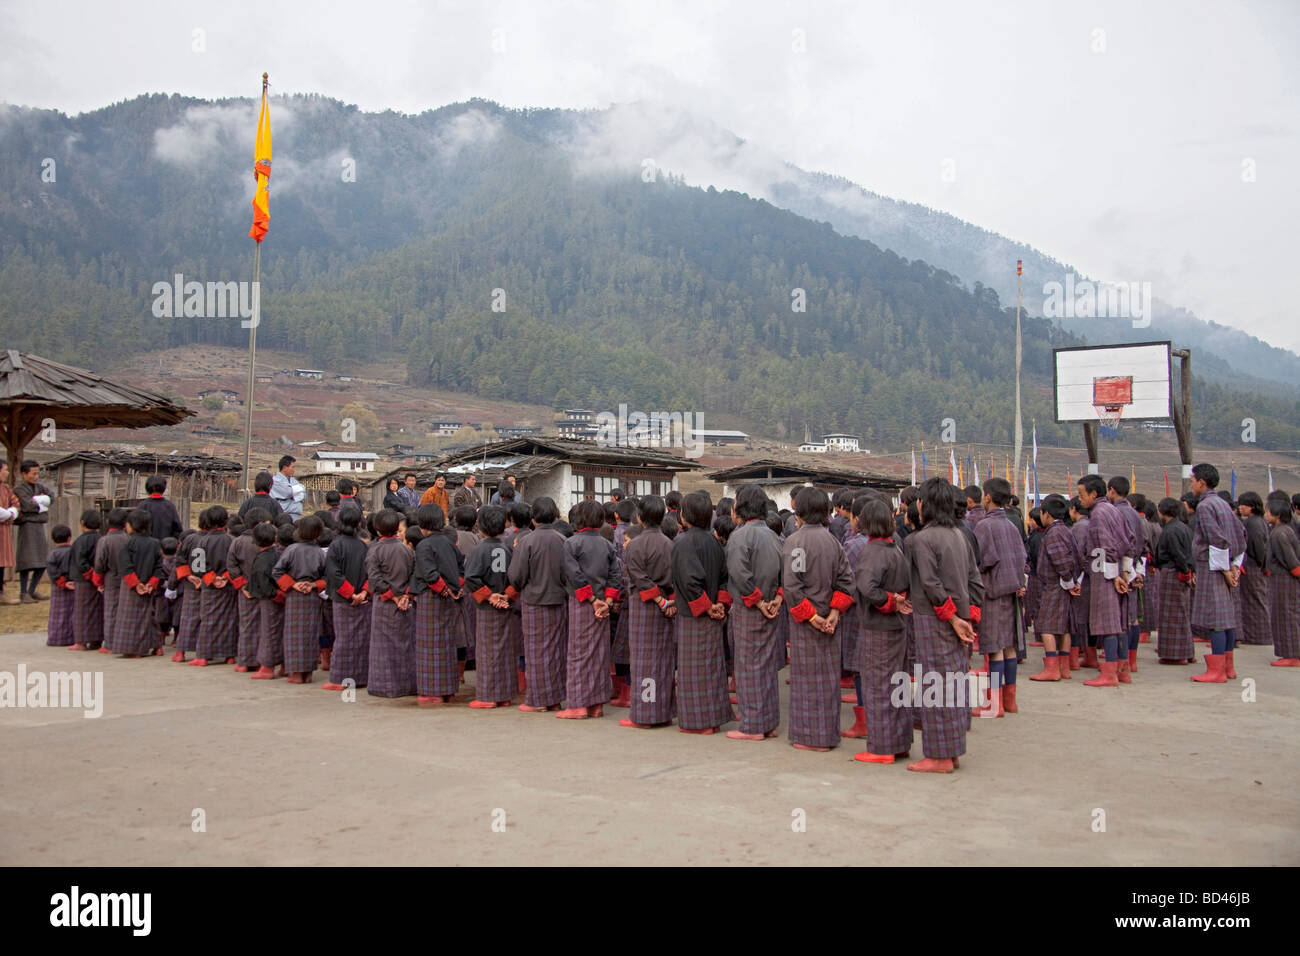 Group of young school children in red boots and uniforms at assembly in school playground 91957_Bhutan-Wangdue - Stock Image